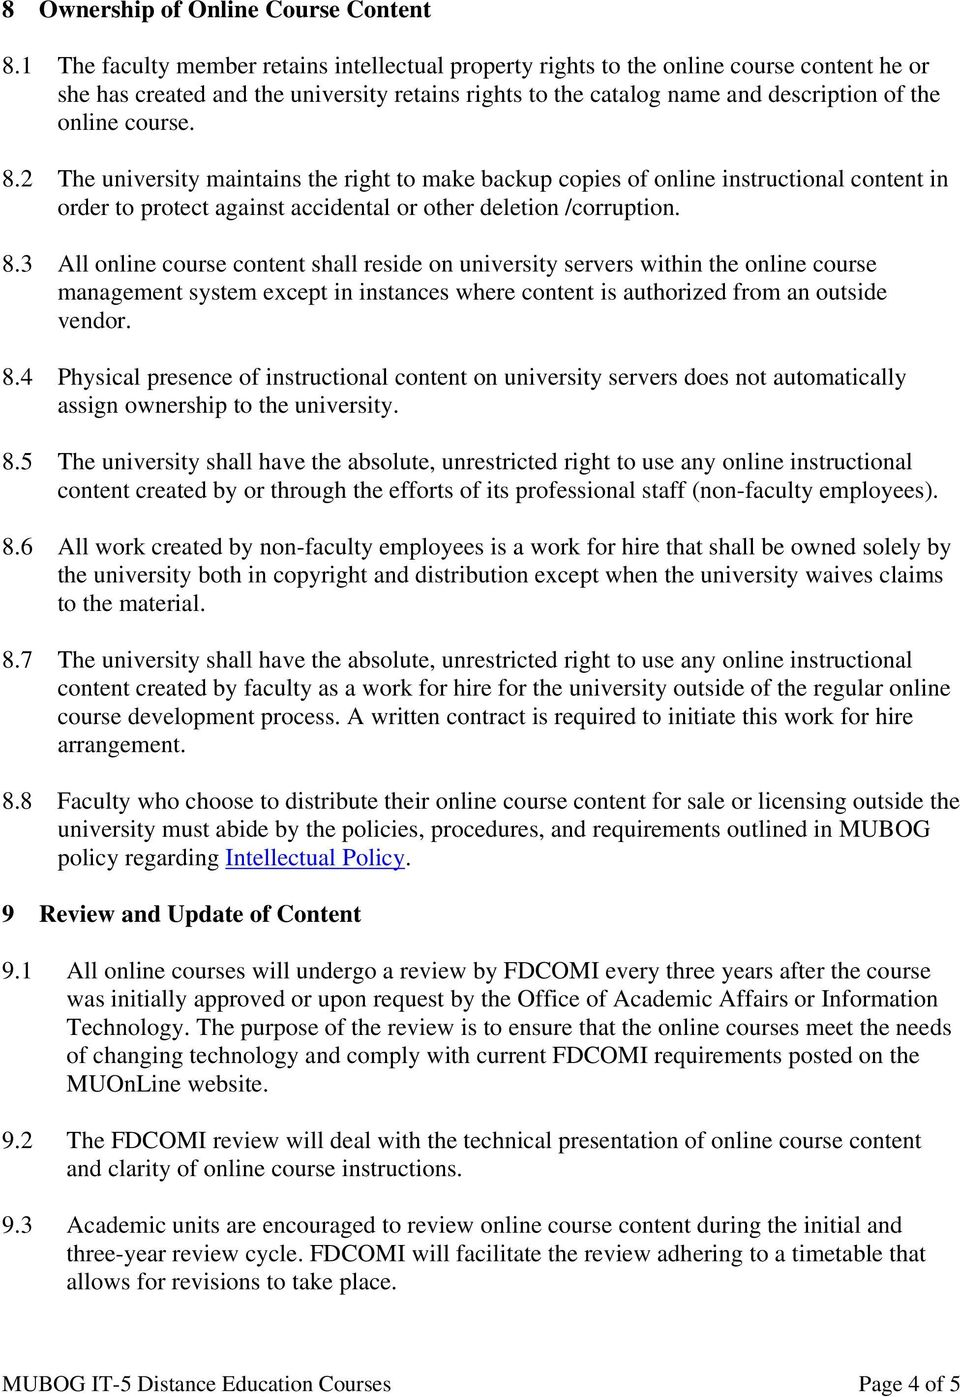 8.2 The university maintains the right to make backup copies of online instructional content in order to protect against accidental or other deletion /corruption. 8.